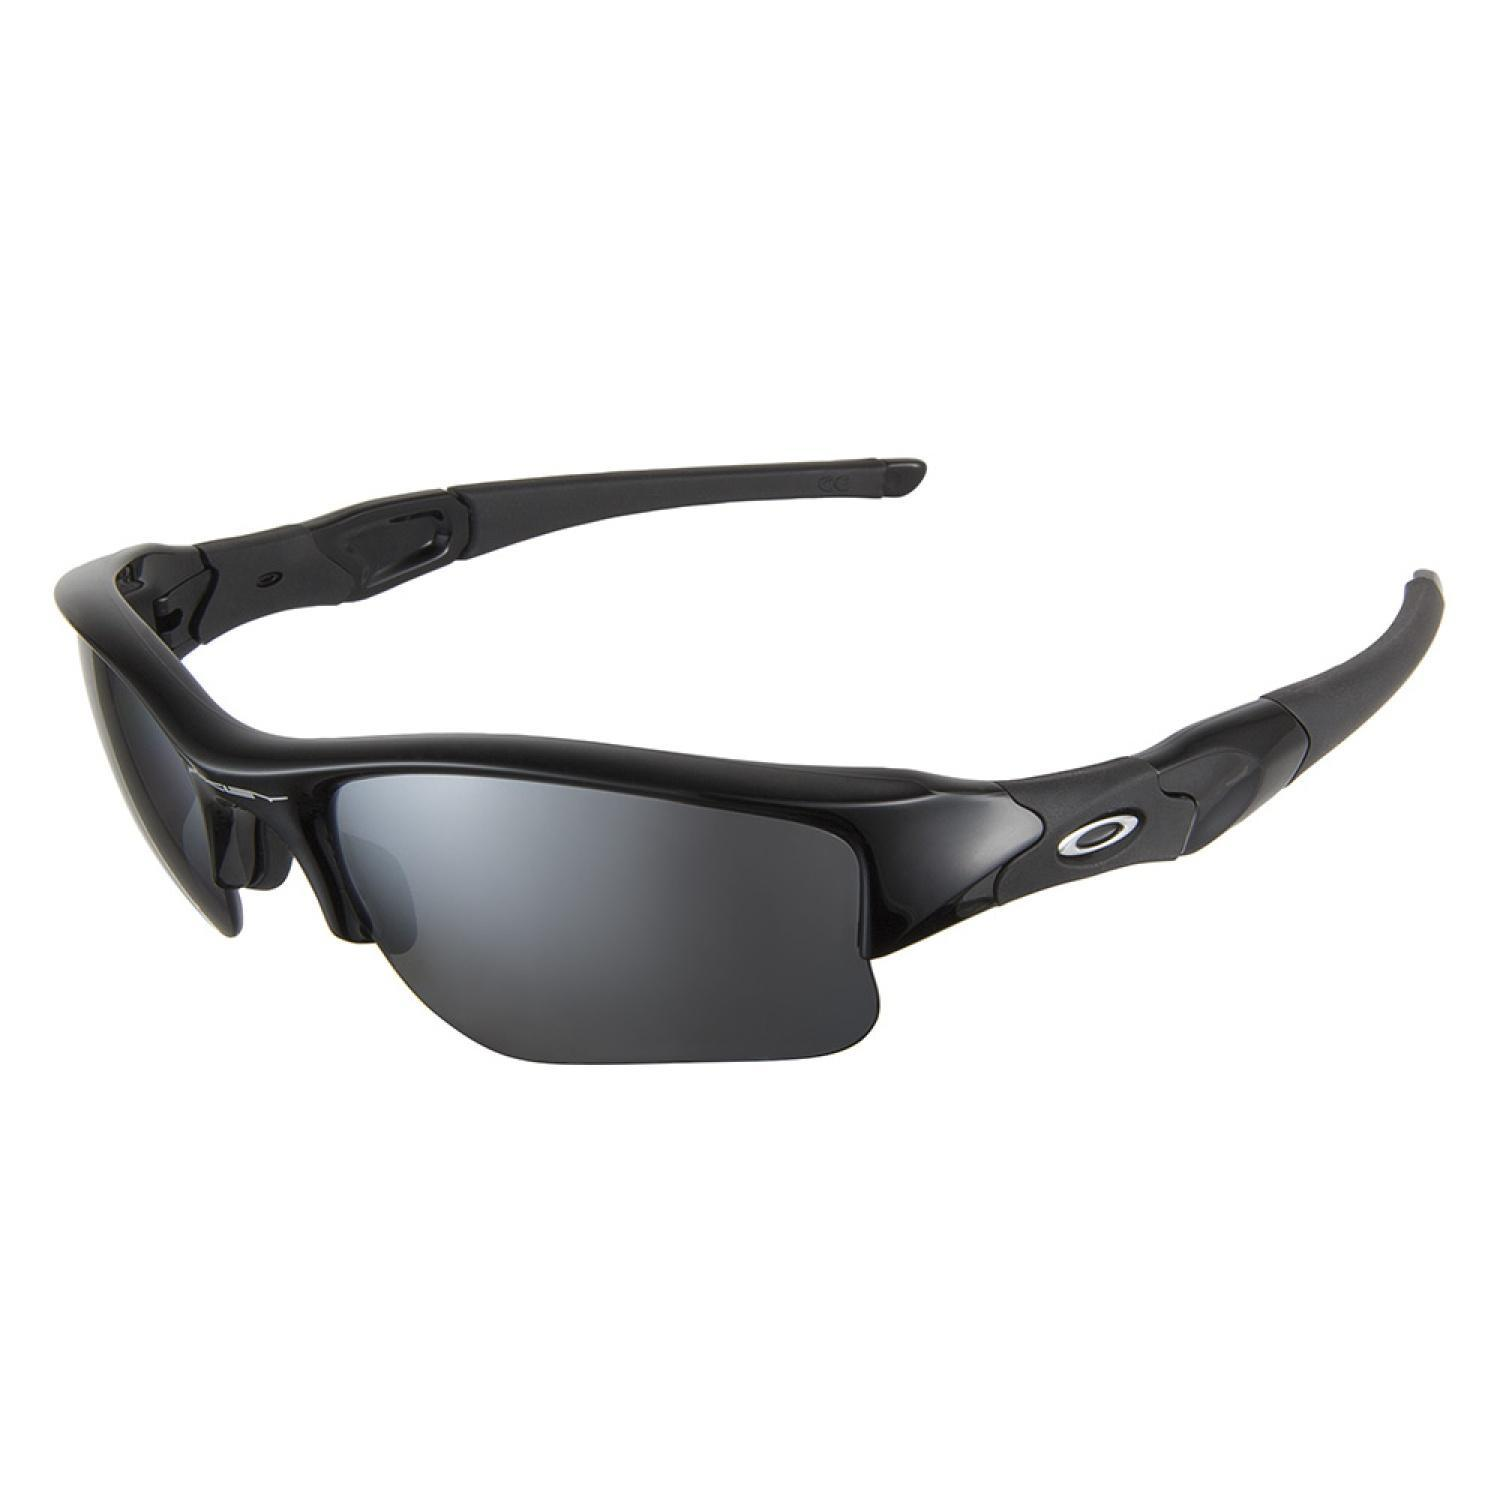 4704b69d87 Oakley Flak Jacket Jet Black L Black Iridium Polarized